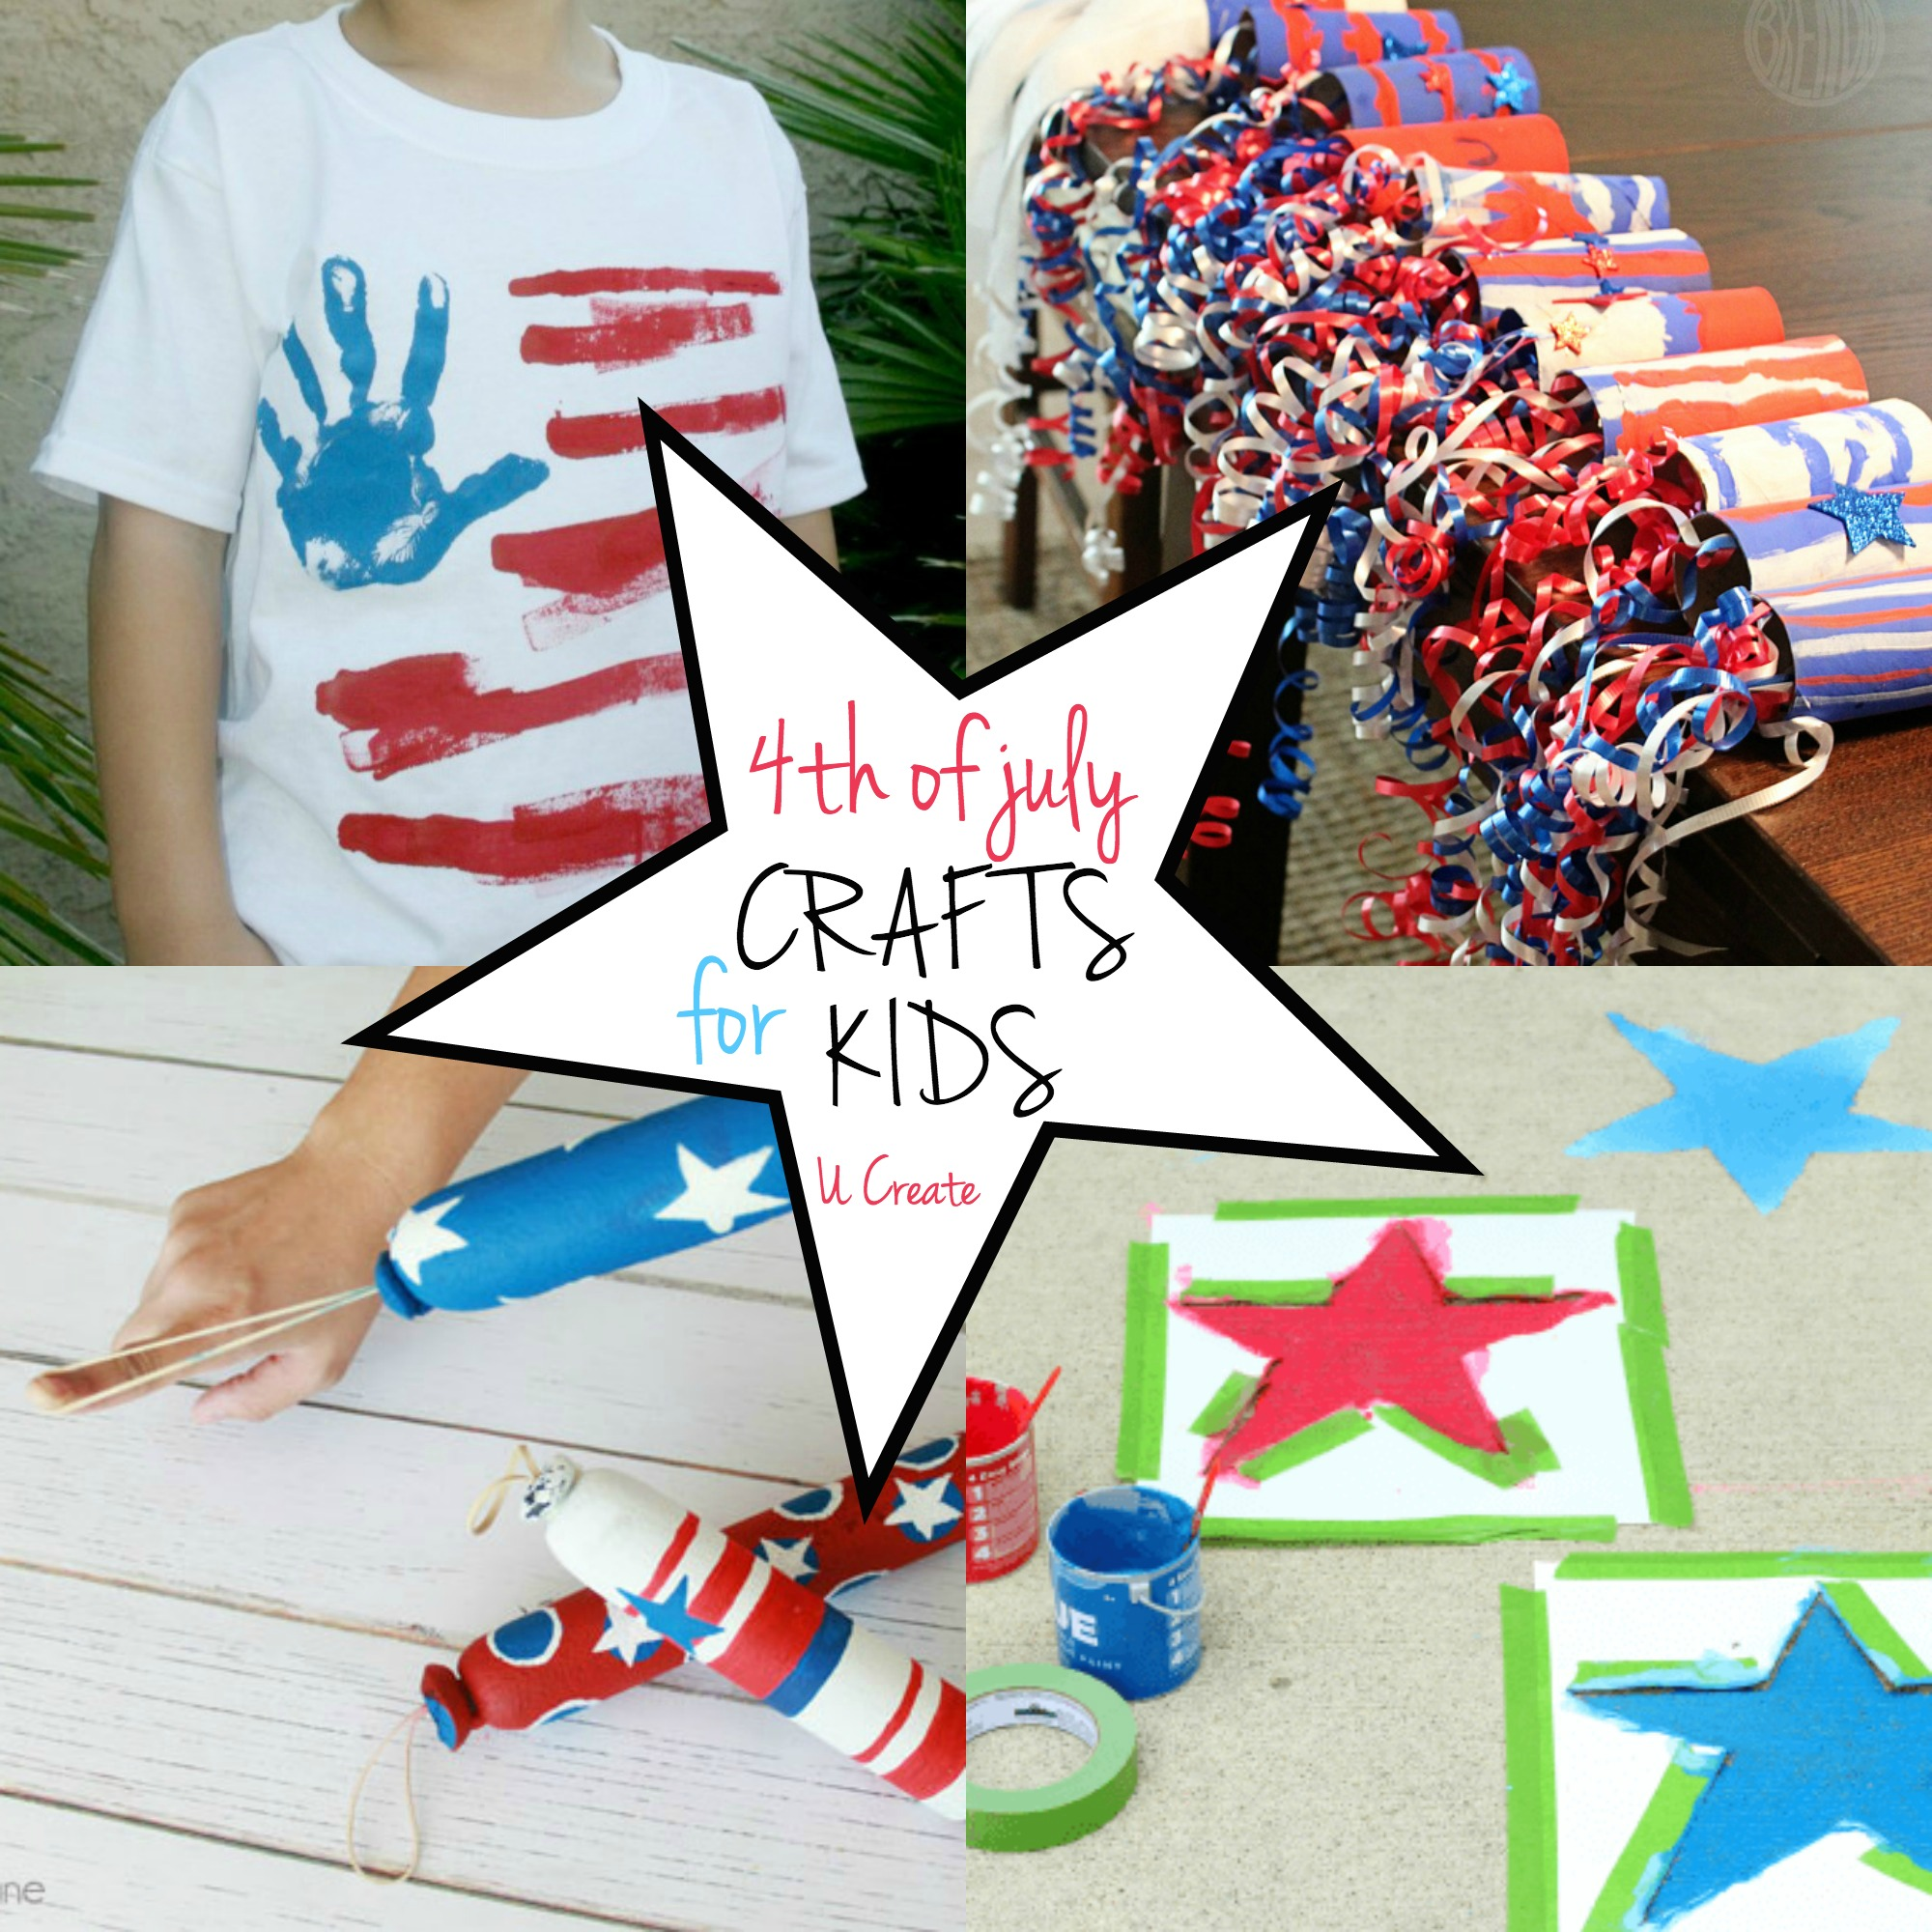 4th of July Crafts for Kids at U Create